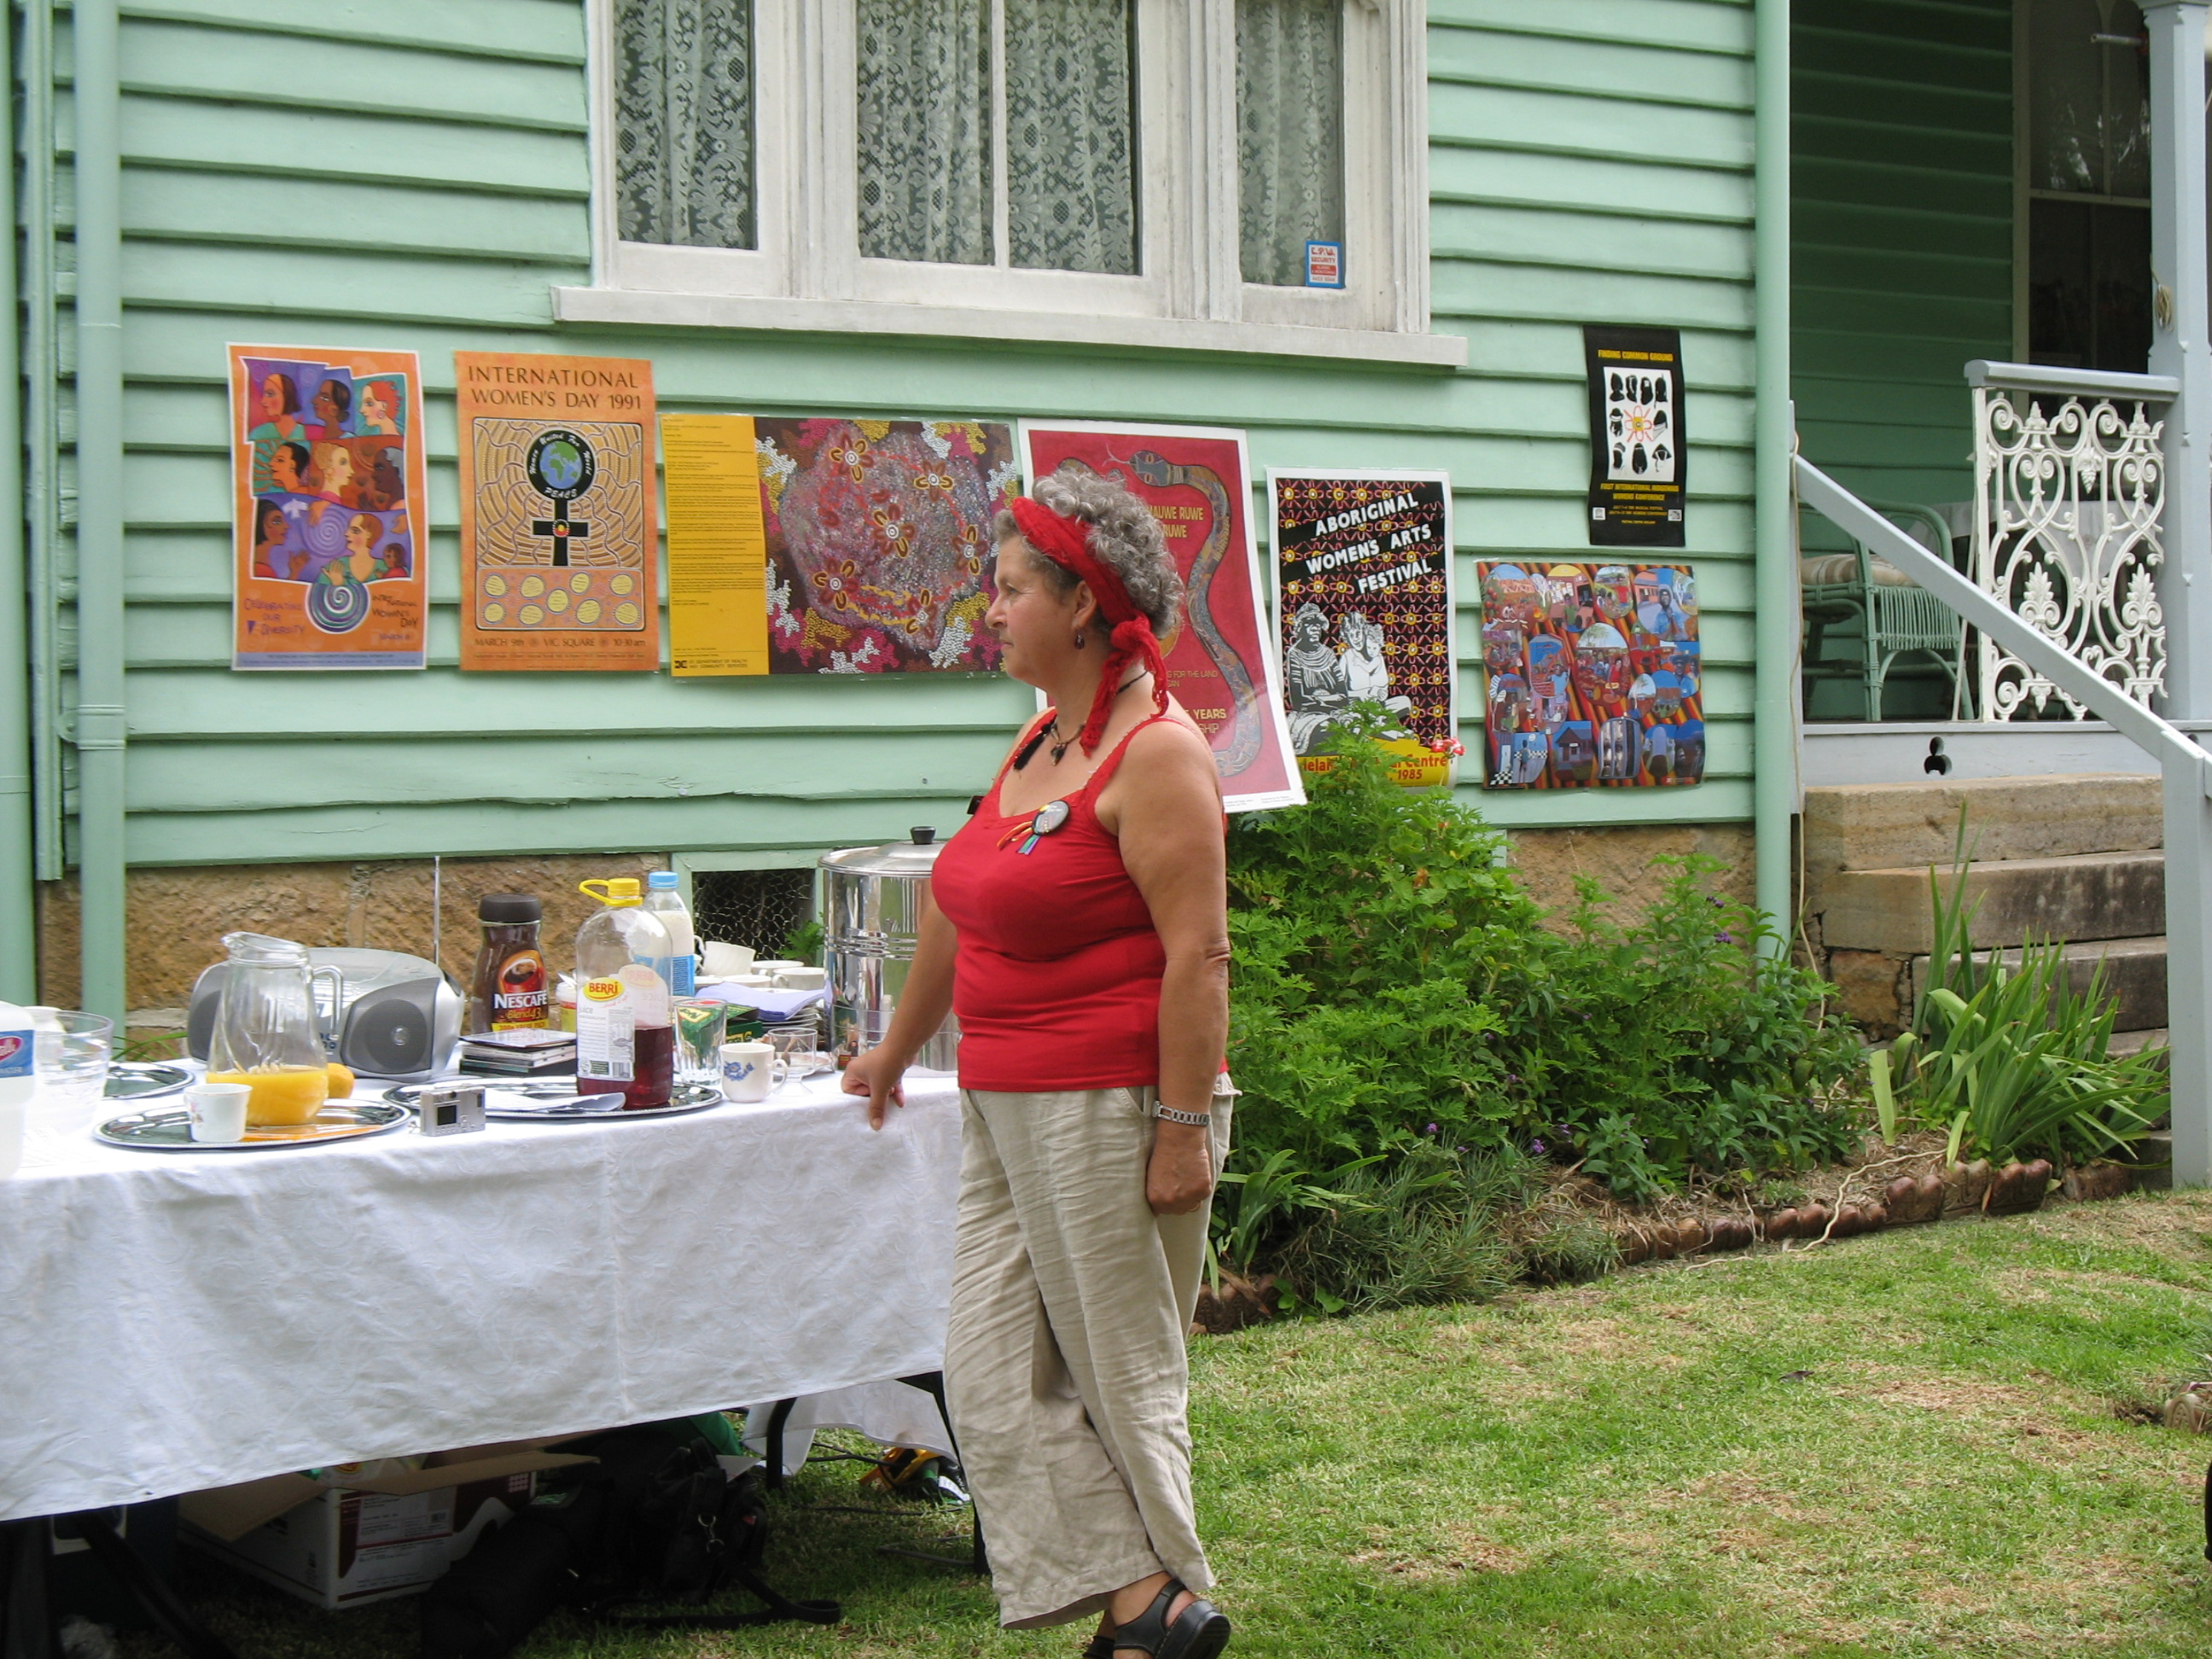 2007, Sandra Lee; Initiator of IWD events in the Shoalhaven at IWD Awards Ceremony